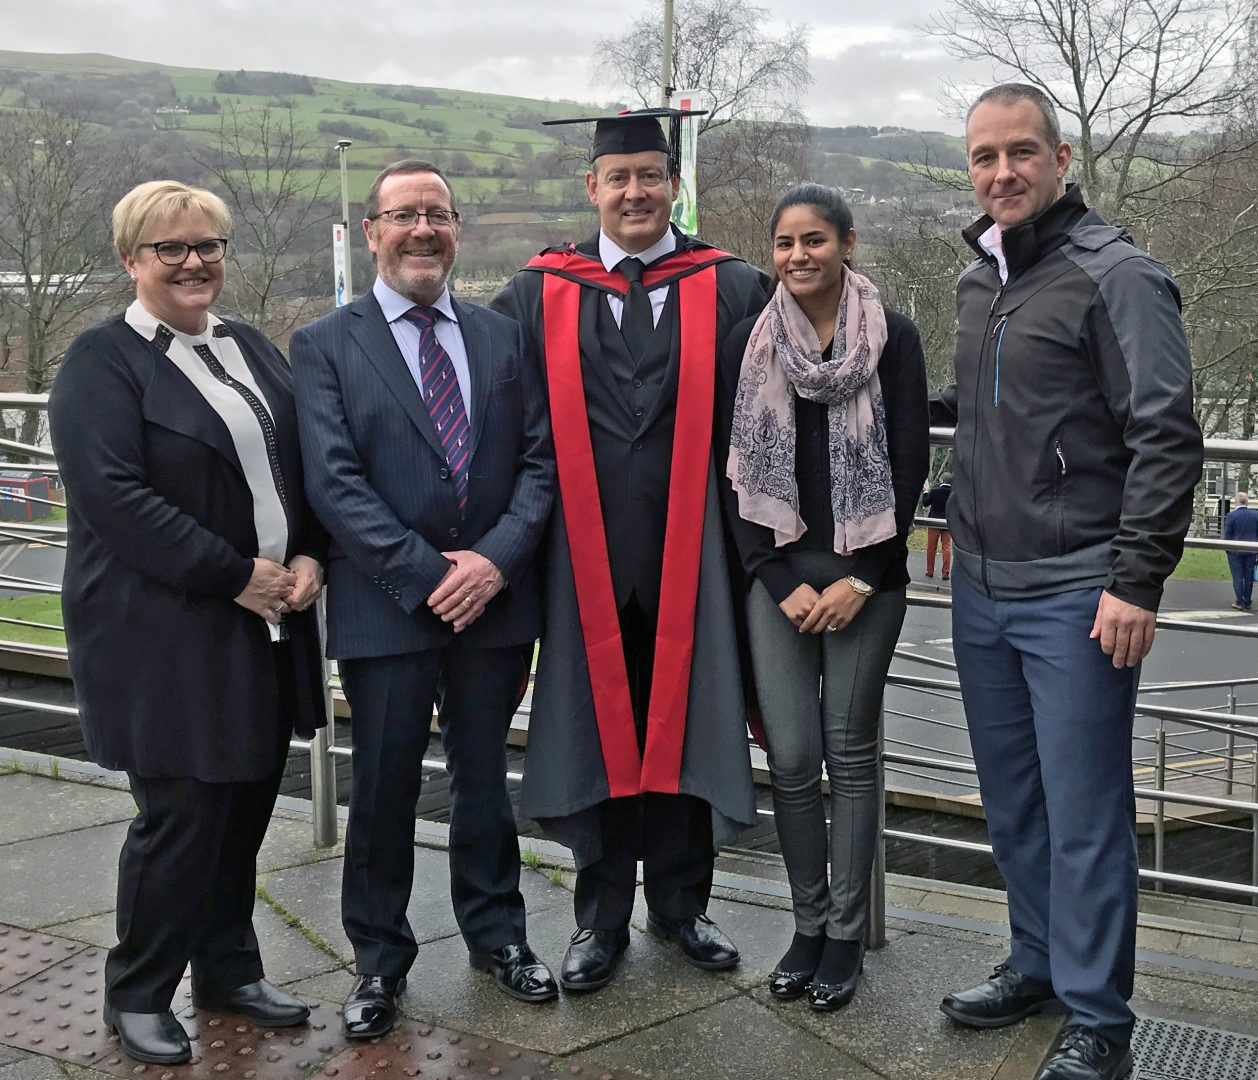 First International Security and Risk Management MSc graduates - Featured image